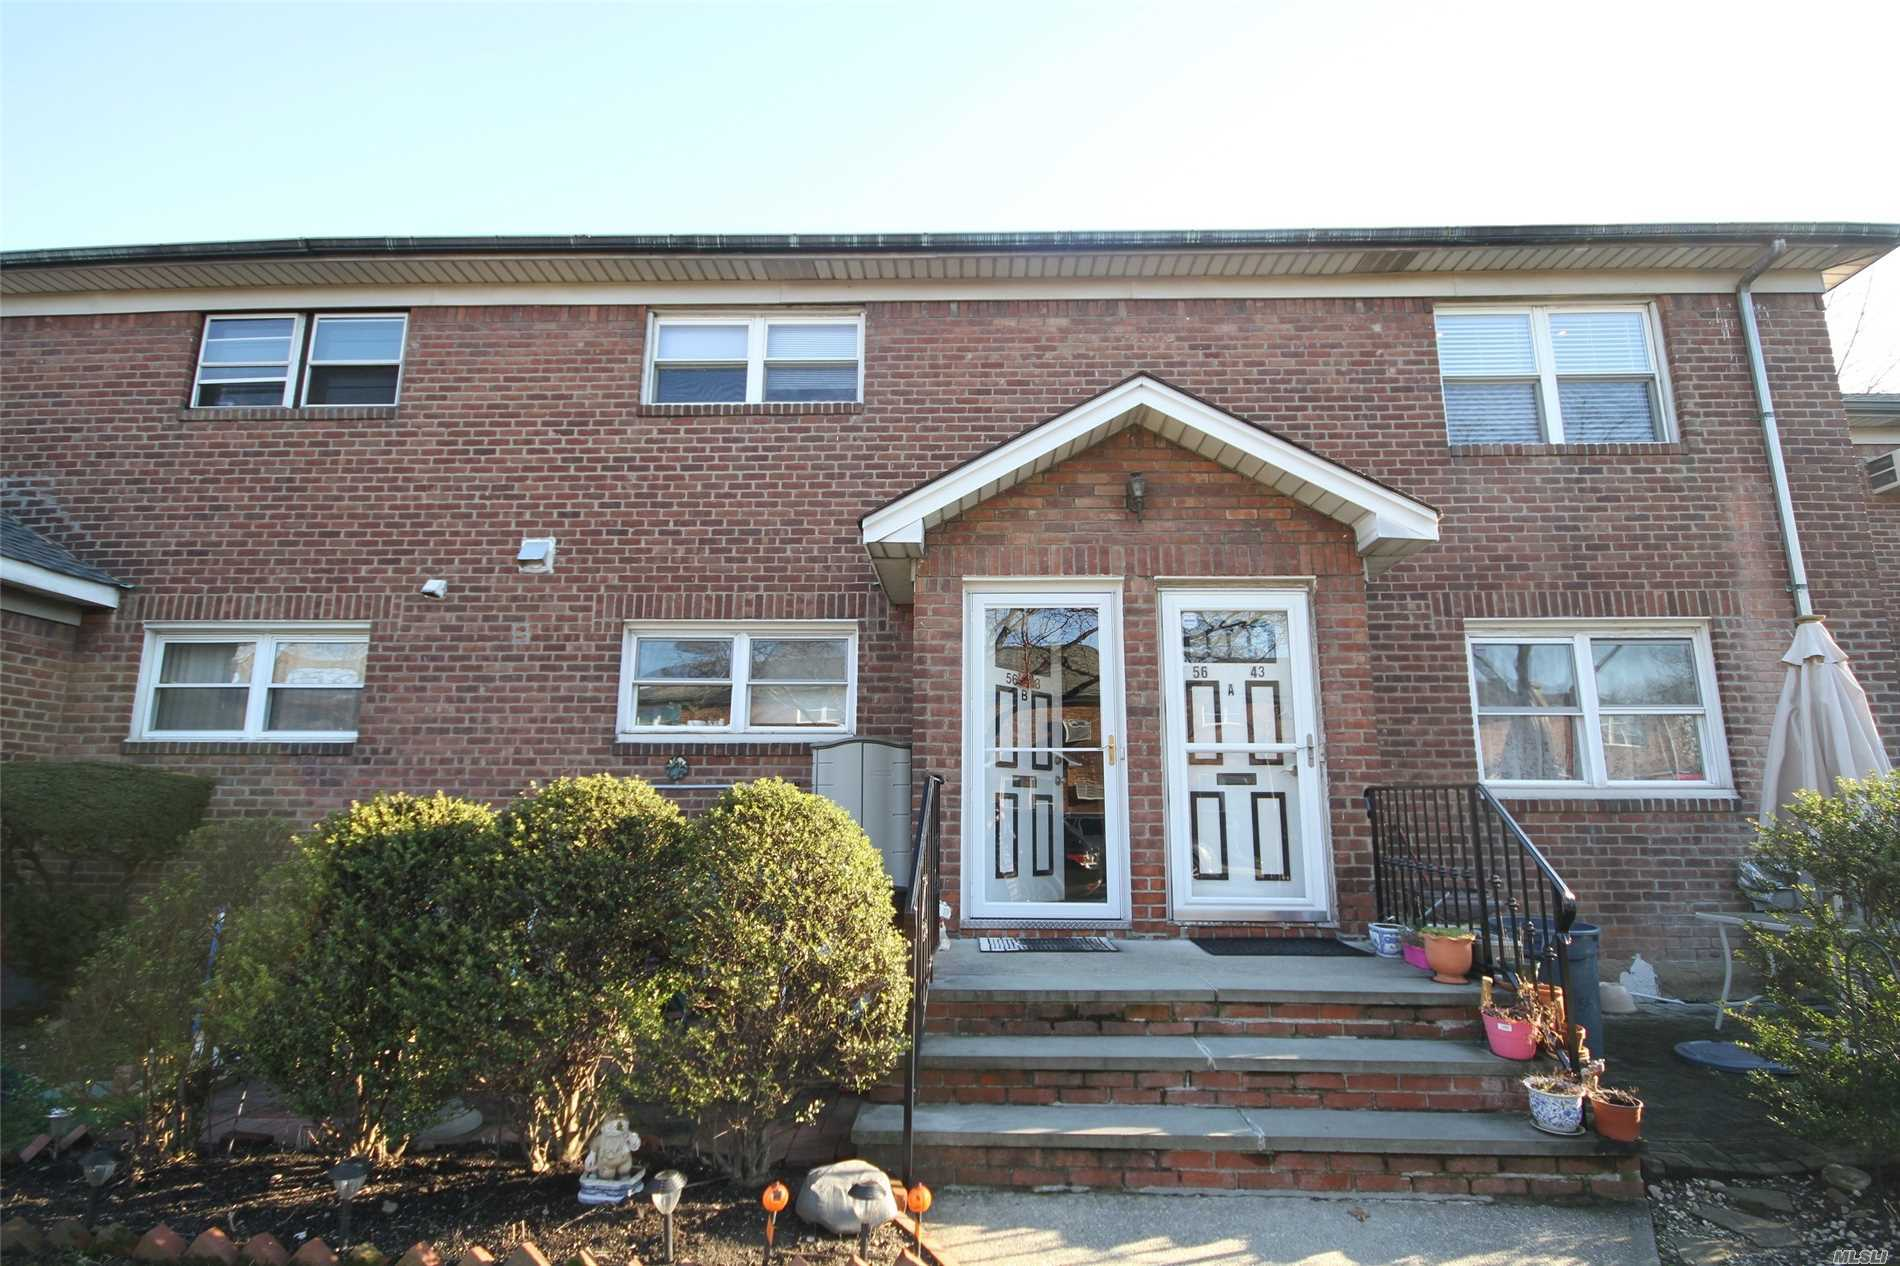 Turnpike Gardens, Upper Level B Unit Featuring A Large, Renovated, Eat-In Kitchen, H/W Floors, Central A/C, 2 Bedrooms Plus An Attic For Storage. Located On A Quiet, Tree-Lined Street Close To Q31, Q17, Q88 And Q30 Buses. Zoned For Sd# 26, Ps 173 And Jhs 216.